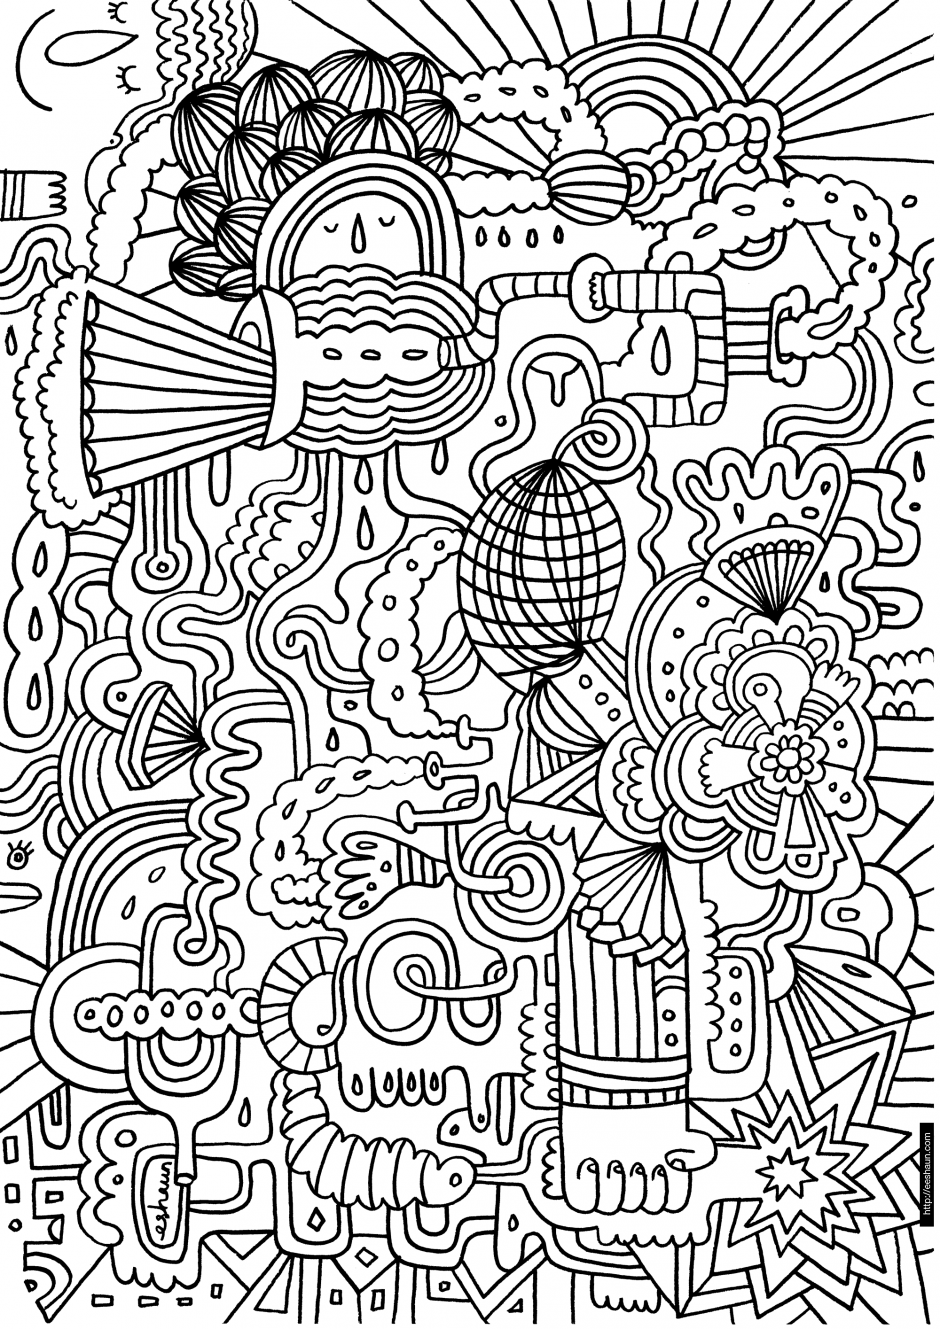 coloring pages hard coloring pages difficult but fun coloring pages free and pages hard coloring